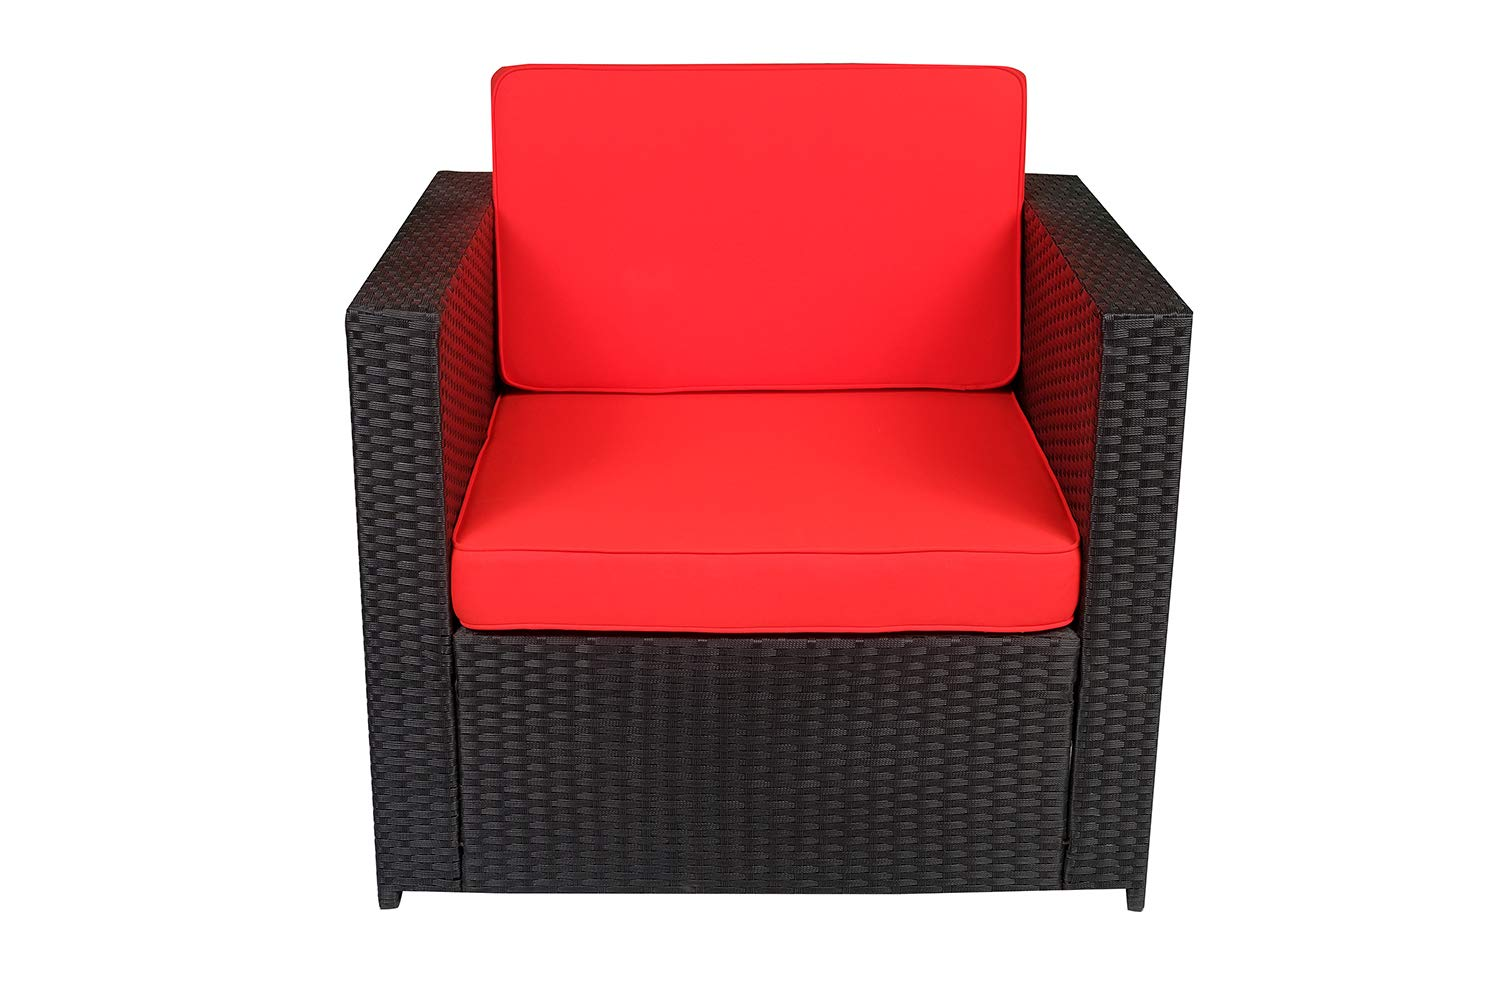 Astonishing Mcombo Outdoor Rattan Wicker Sofa Couch Patio Furniture Chair Garden Sectional Set With Waterproof Cushions Diy Armrest Chair Red 6088 Download Free Architecture Designs Scobabritishbridgeorg